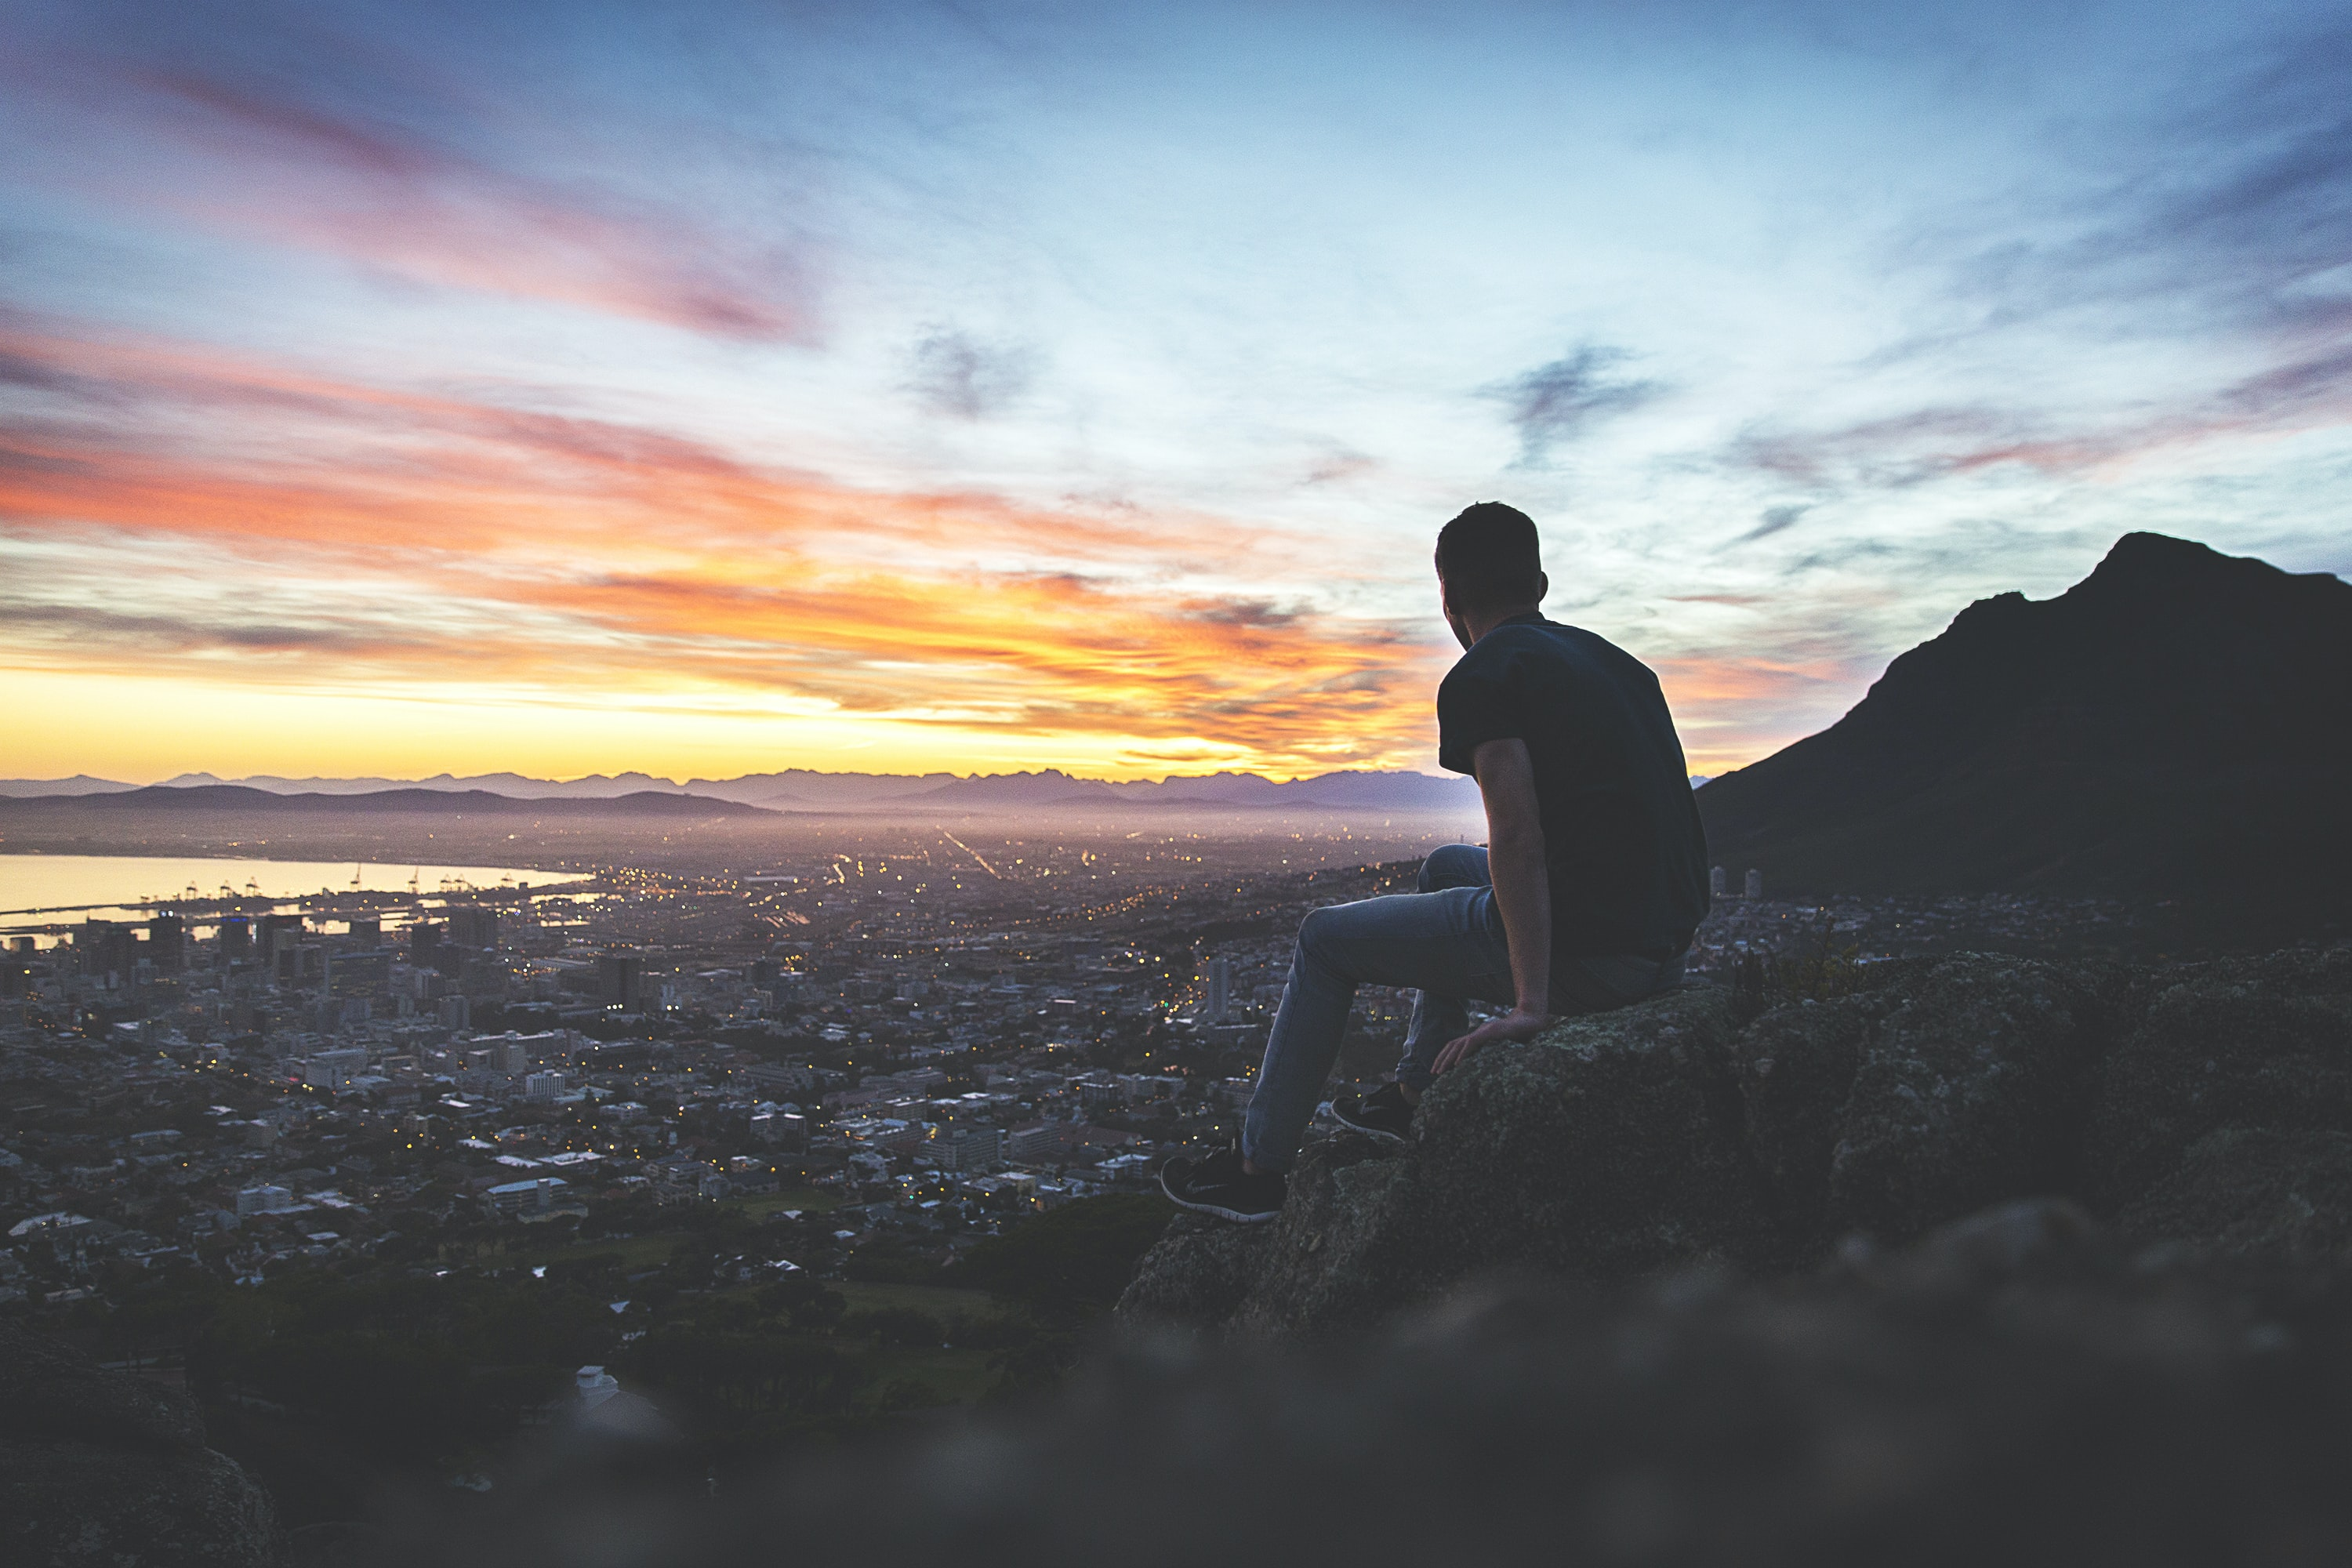 Man sitting on a rocky ledge, watching the sunset over Cape Town